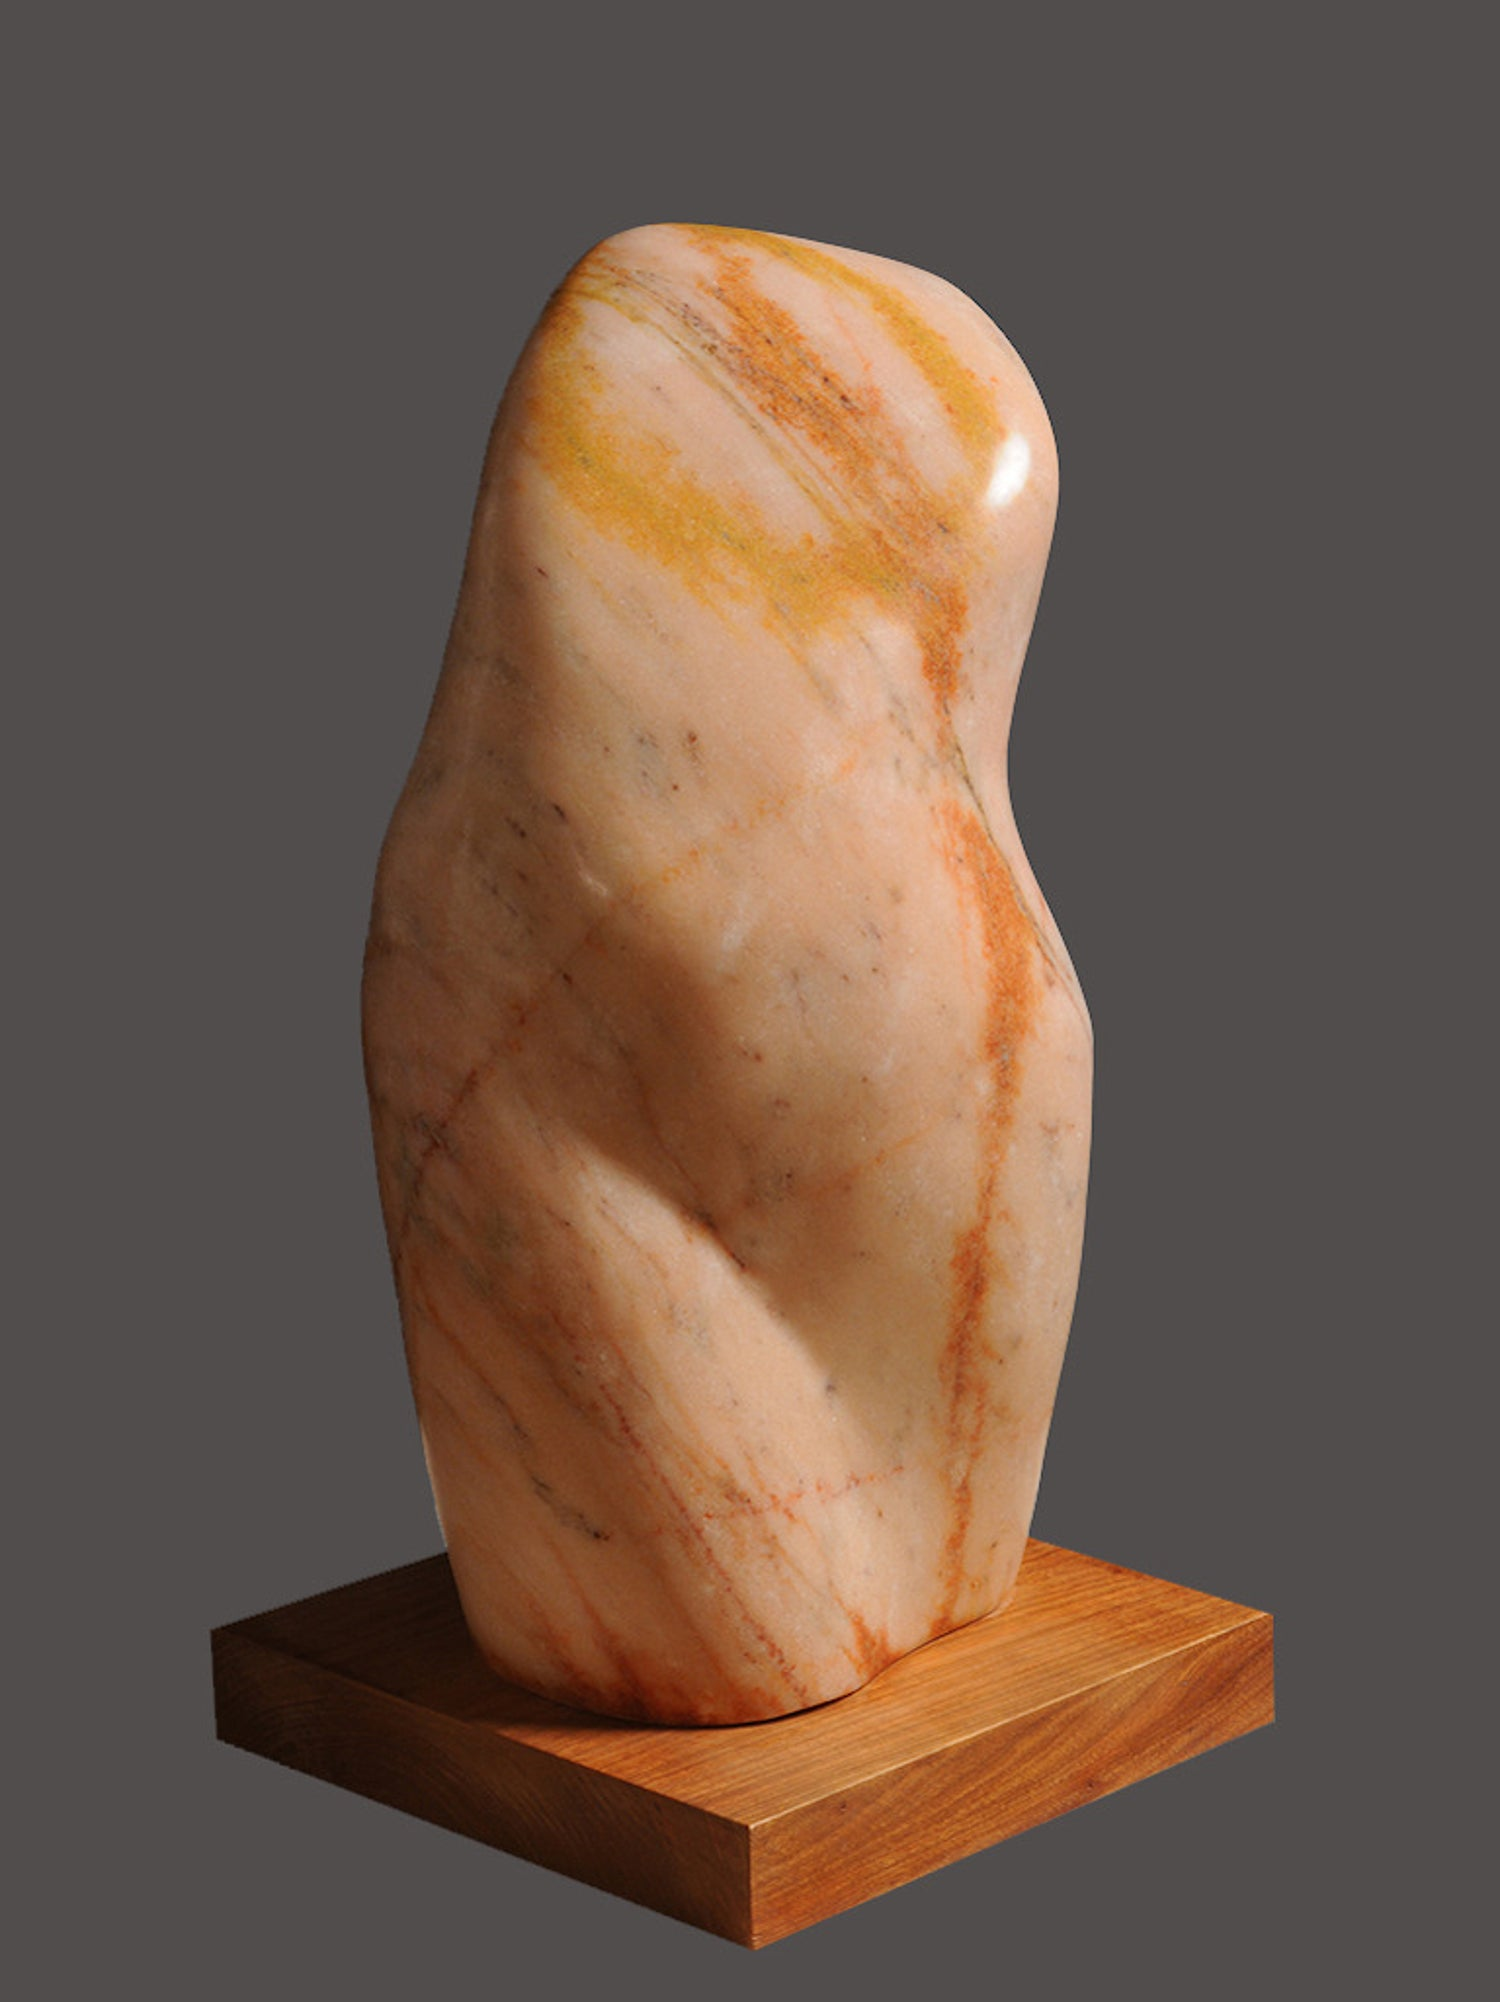 Lilian r. engel chasse marble sculpture for sale at 1stdibs